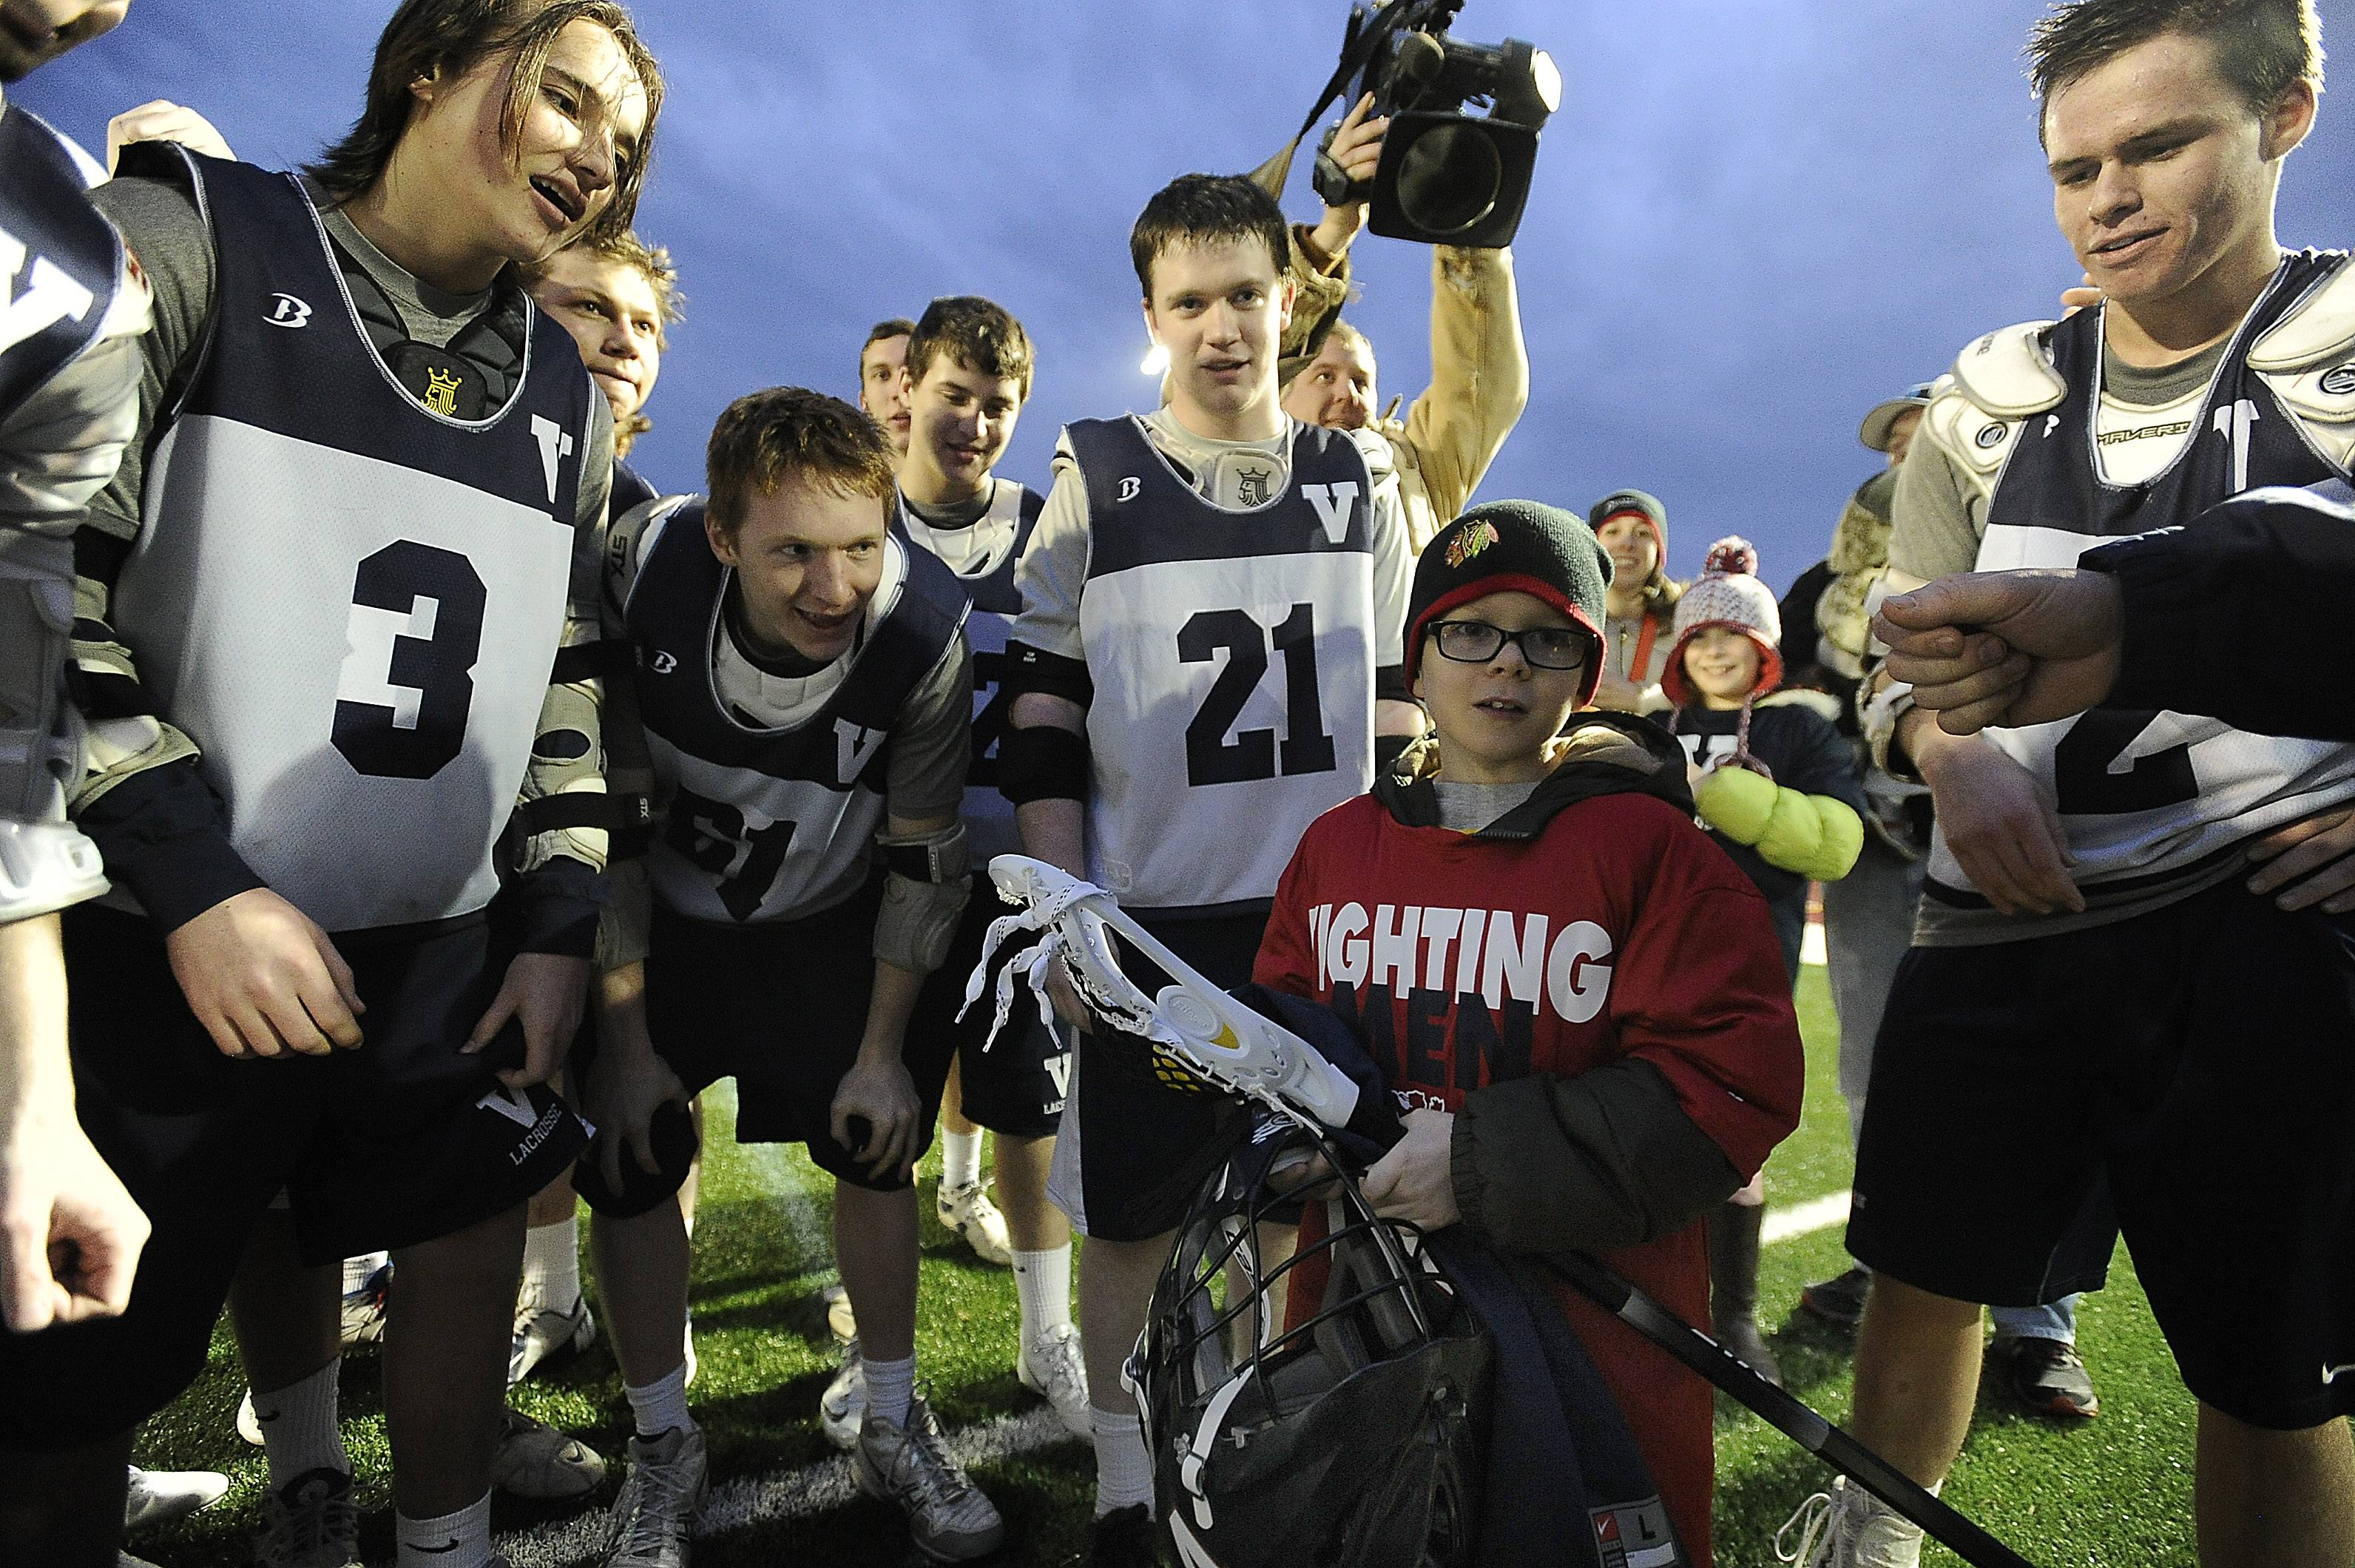 The St. Viator boys lacrosse team honored 8-year-old Dylan Full, who has been battling cancer, as part of Friday's game against Marian Catholic at Forest View Educational Center. The team presented Full with a helmet, stick and jersey in addition to an abundance of love.